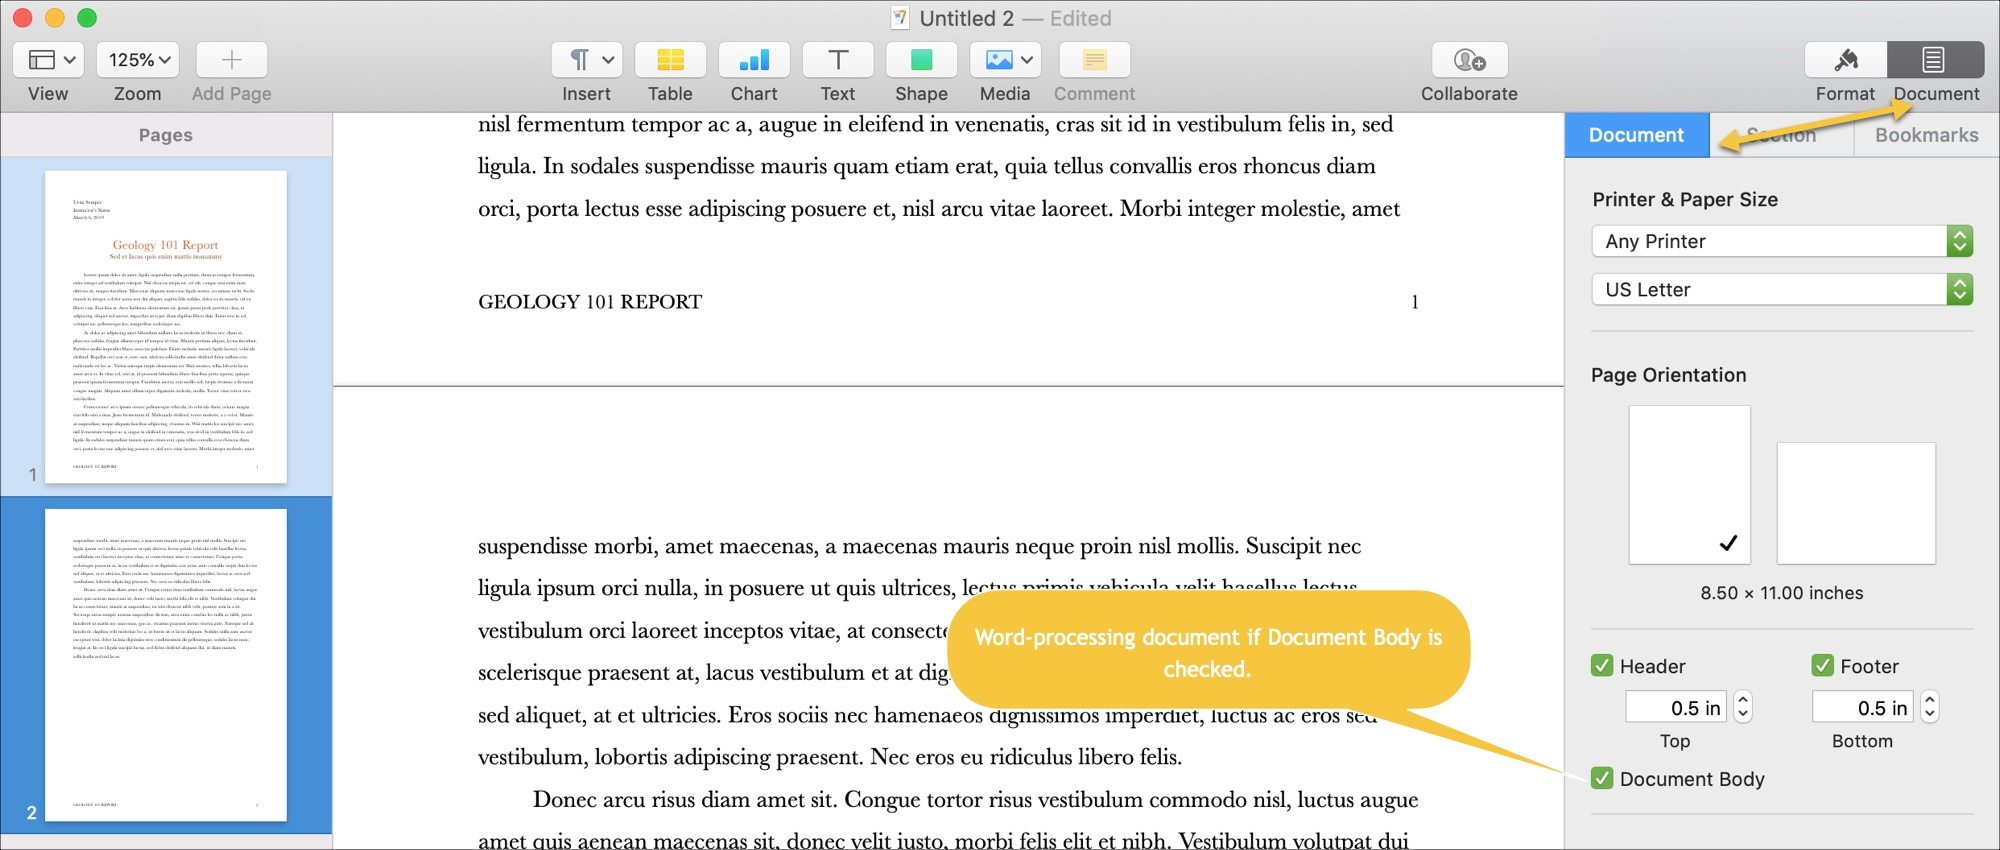 How to add, rearrange, duplicate and delete pages in Pages on Mac